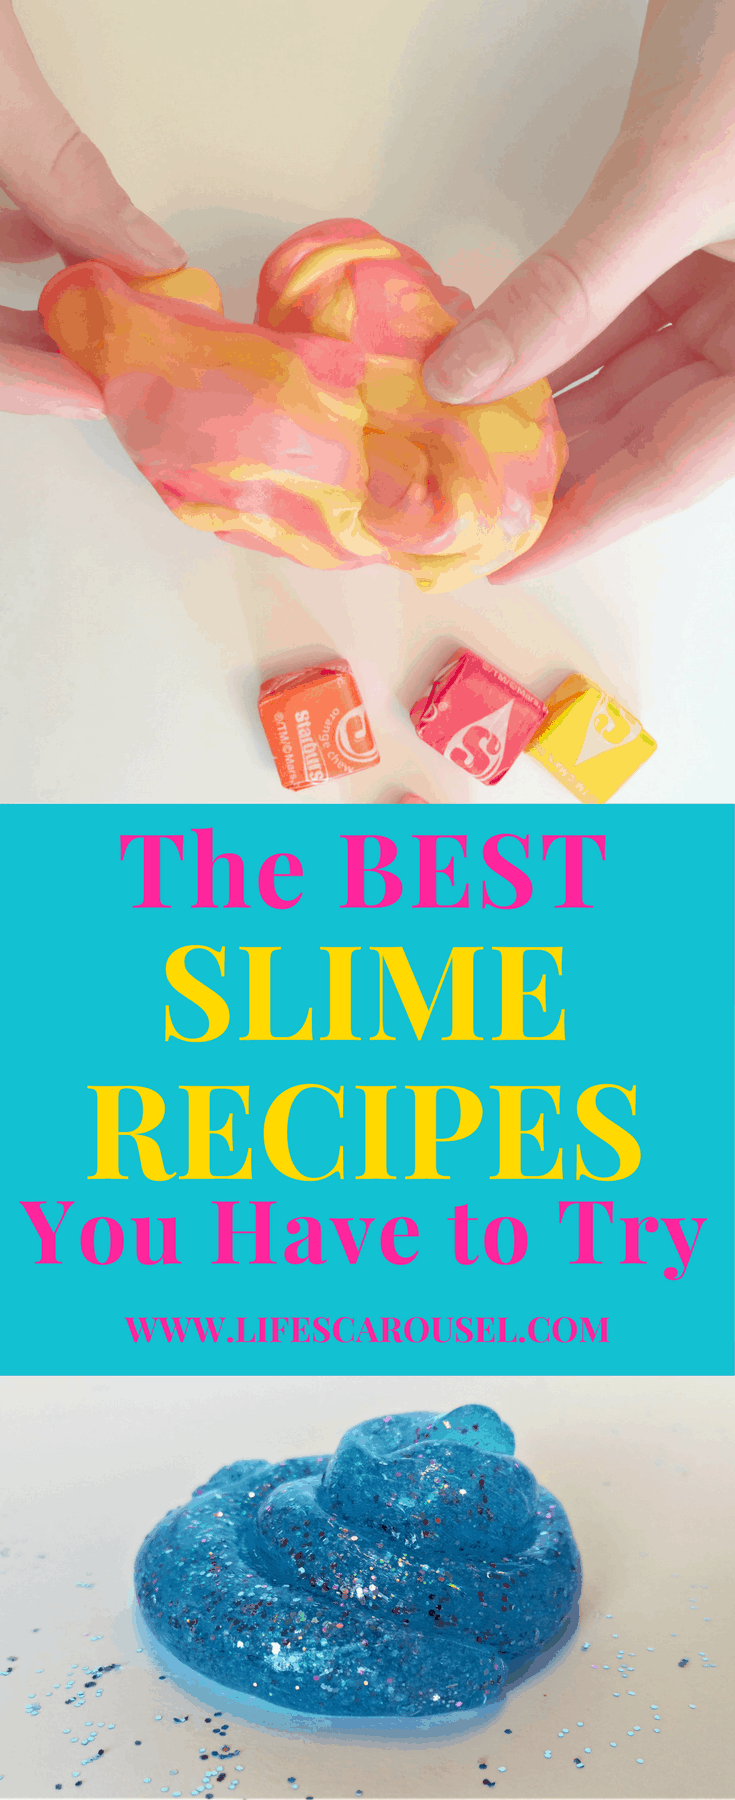 Best Slime Recipes you have to try! Your kids will love these easy slime recipes - galaxy slime, edible slime, butter slime and more! Fun kids activity craft for kids of all ages.